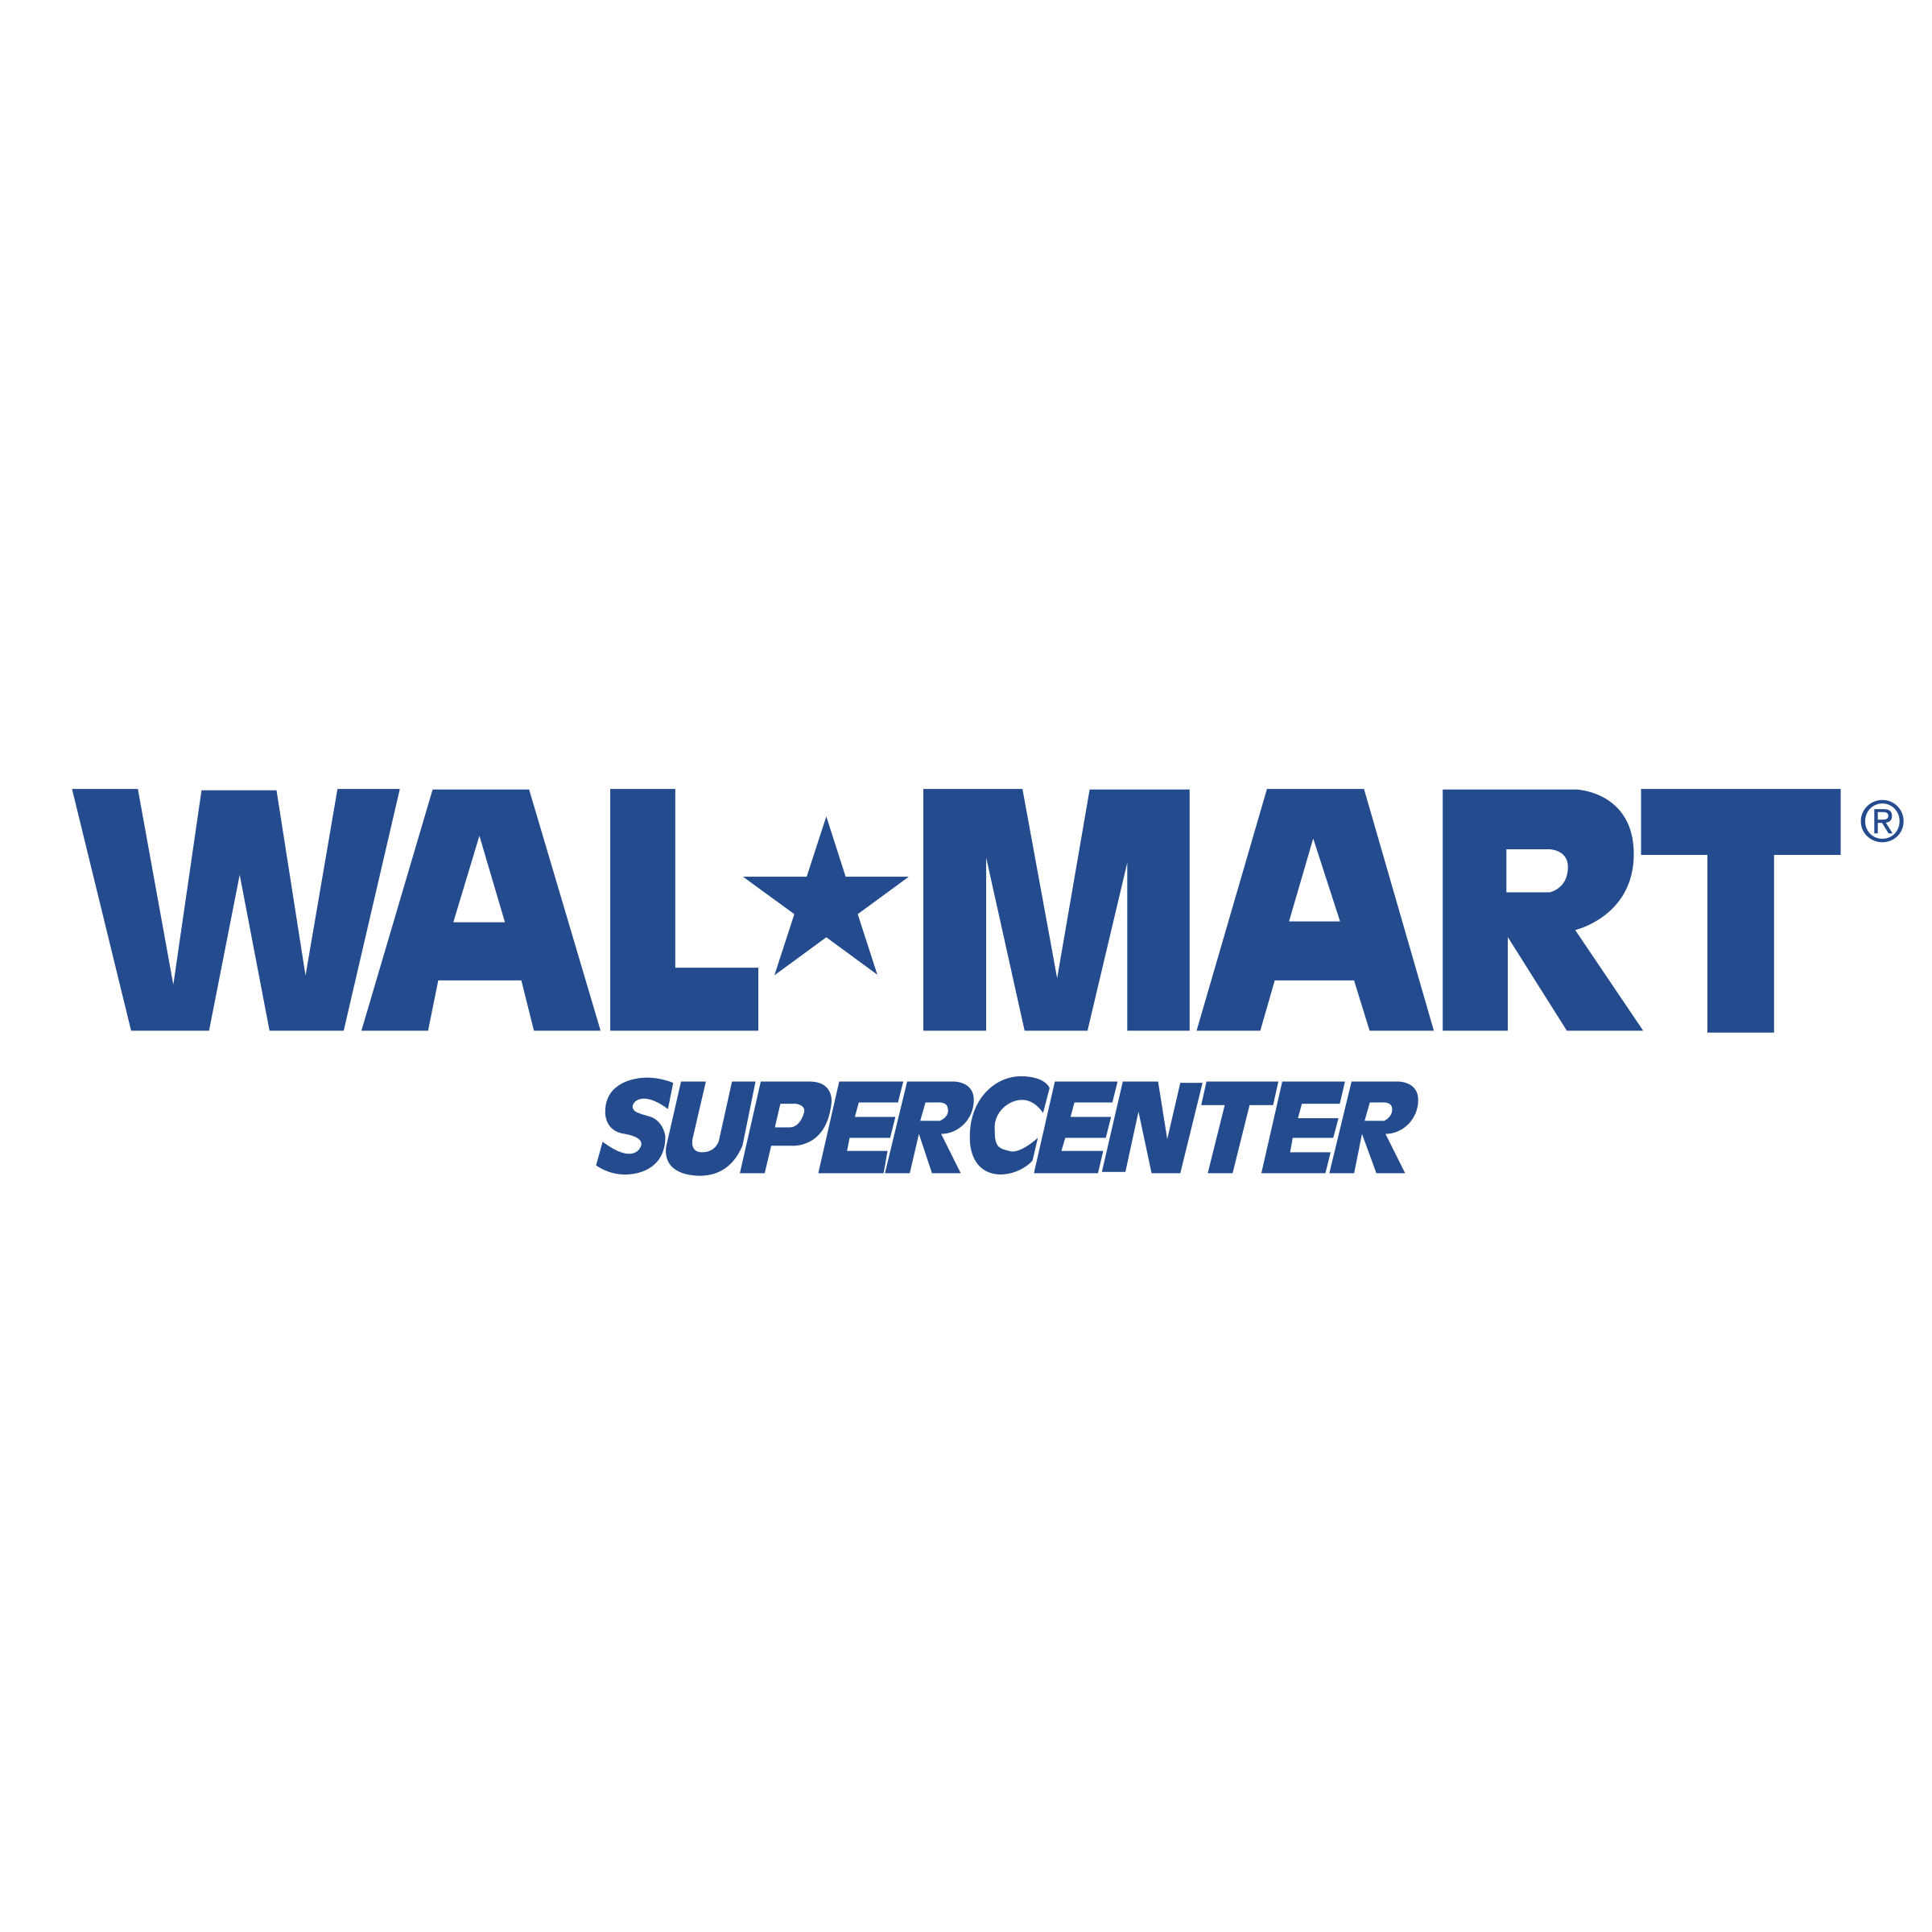 wal mart resources and capabilities Wal-mart is the largest public corporation according to the forbes global, it has  been running chain of stores and warehouses nationally and internationally.